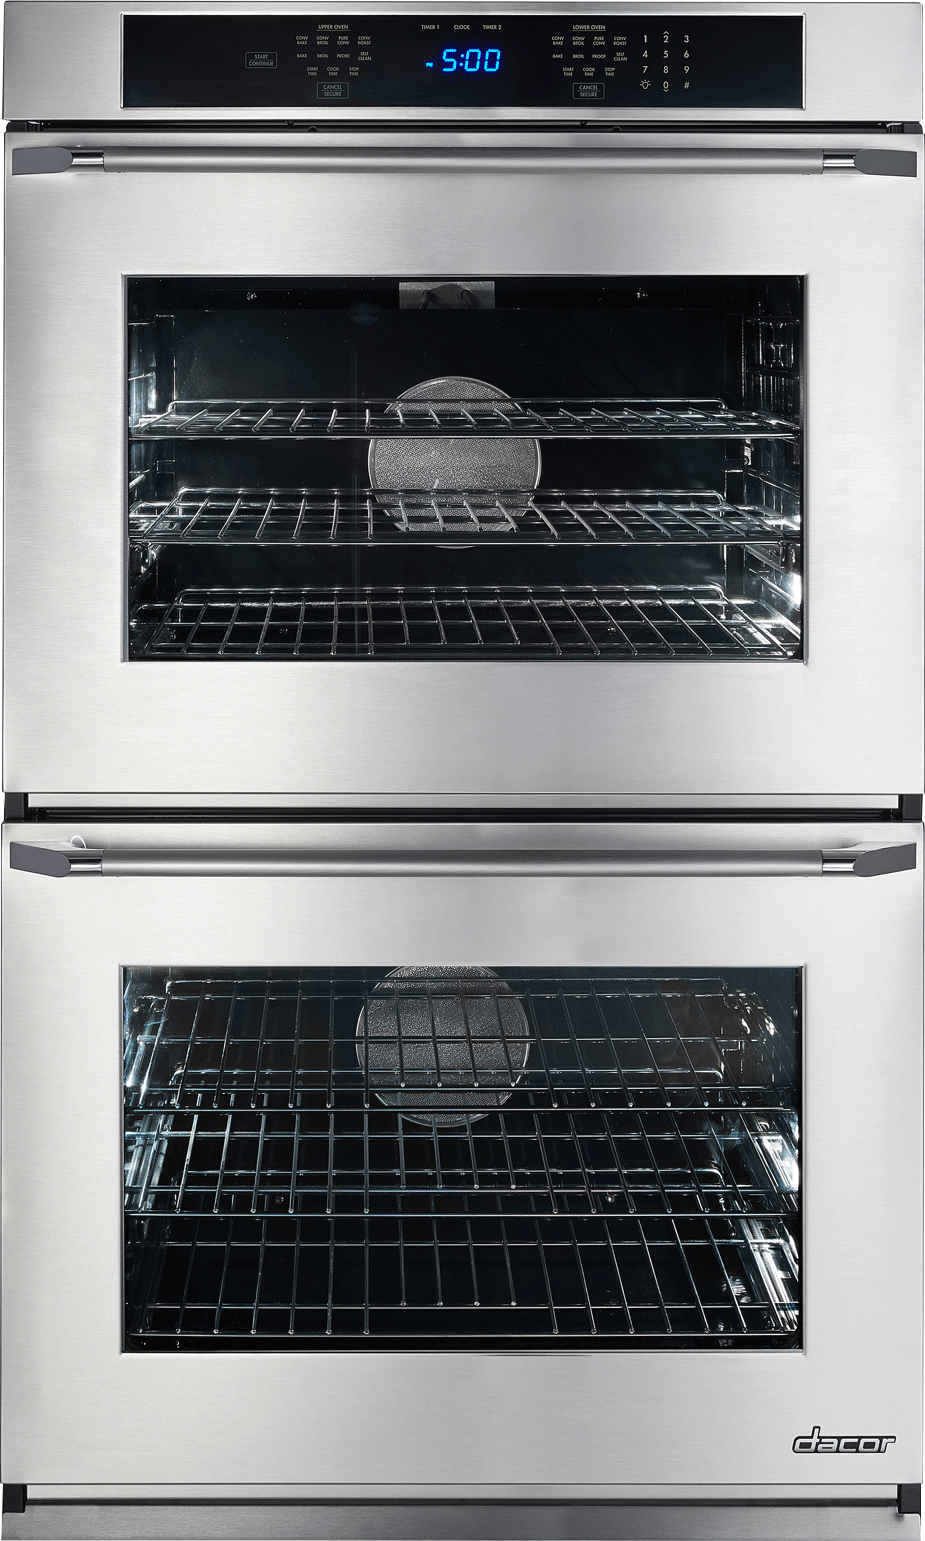 Side by side double oven cost - Side By Side Double Oven Cost 25